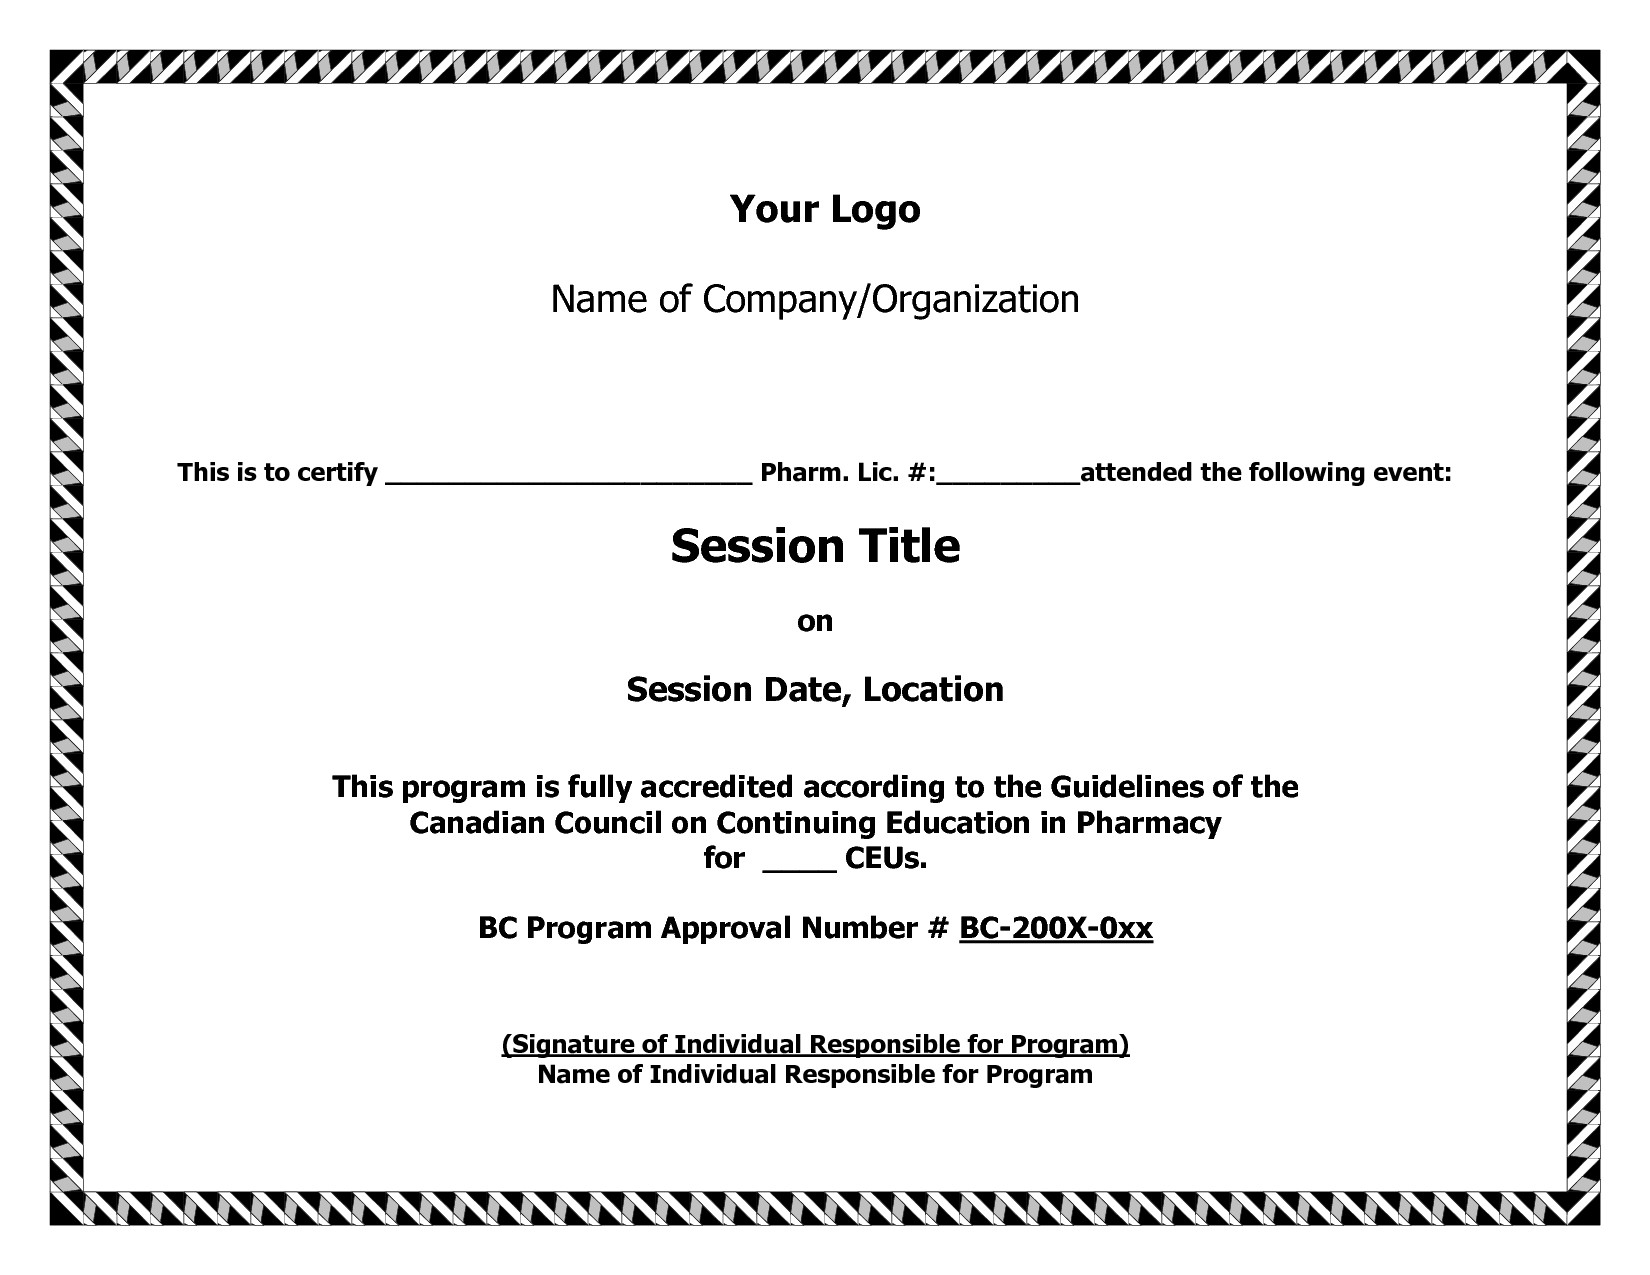 What is Certificate of Title